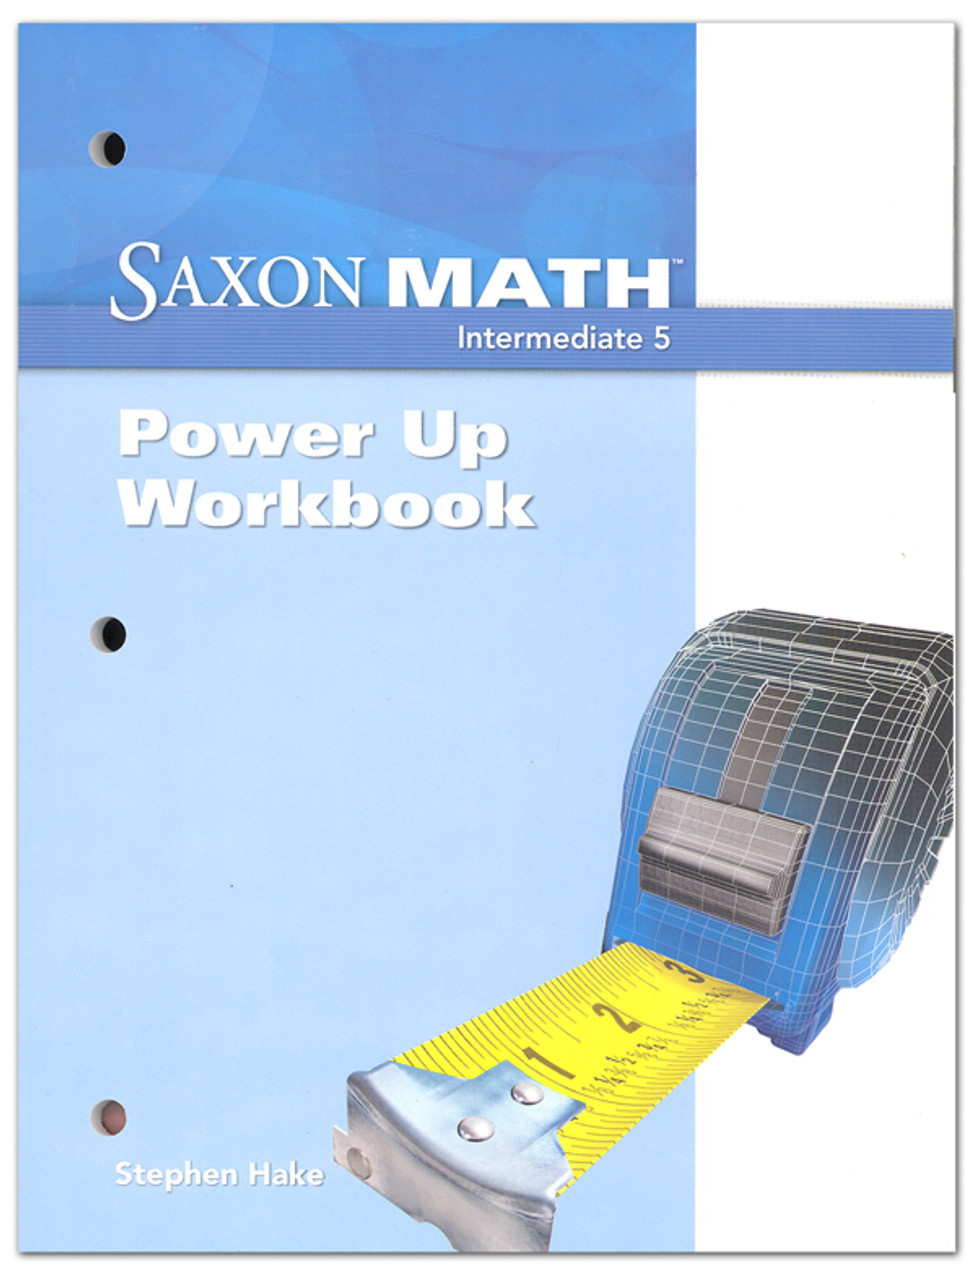 small resolution of Saxon Math Grade 5 Intermediate Power Up Workbook - Classroom Resource  Center